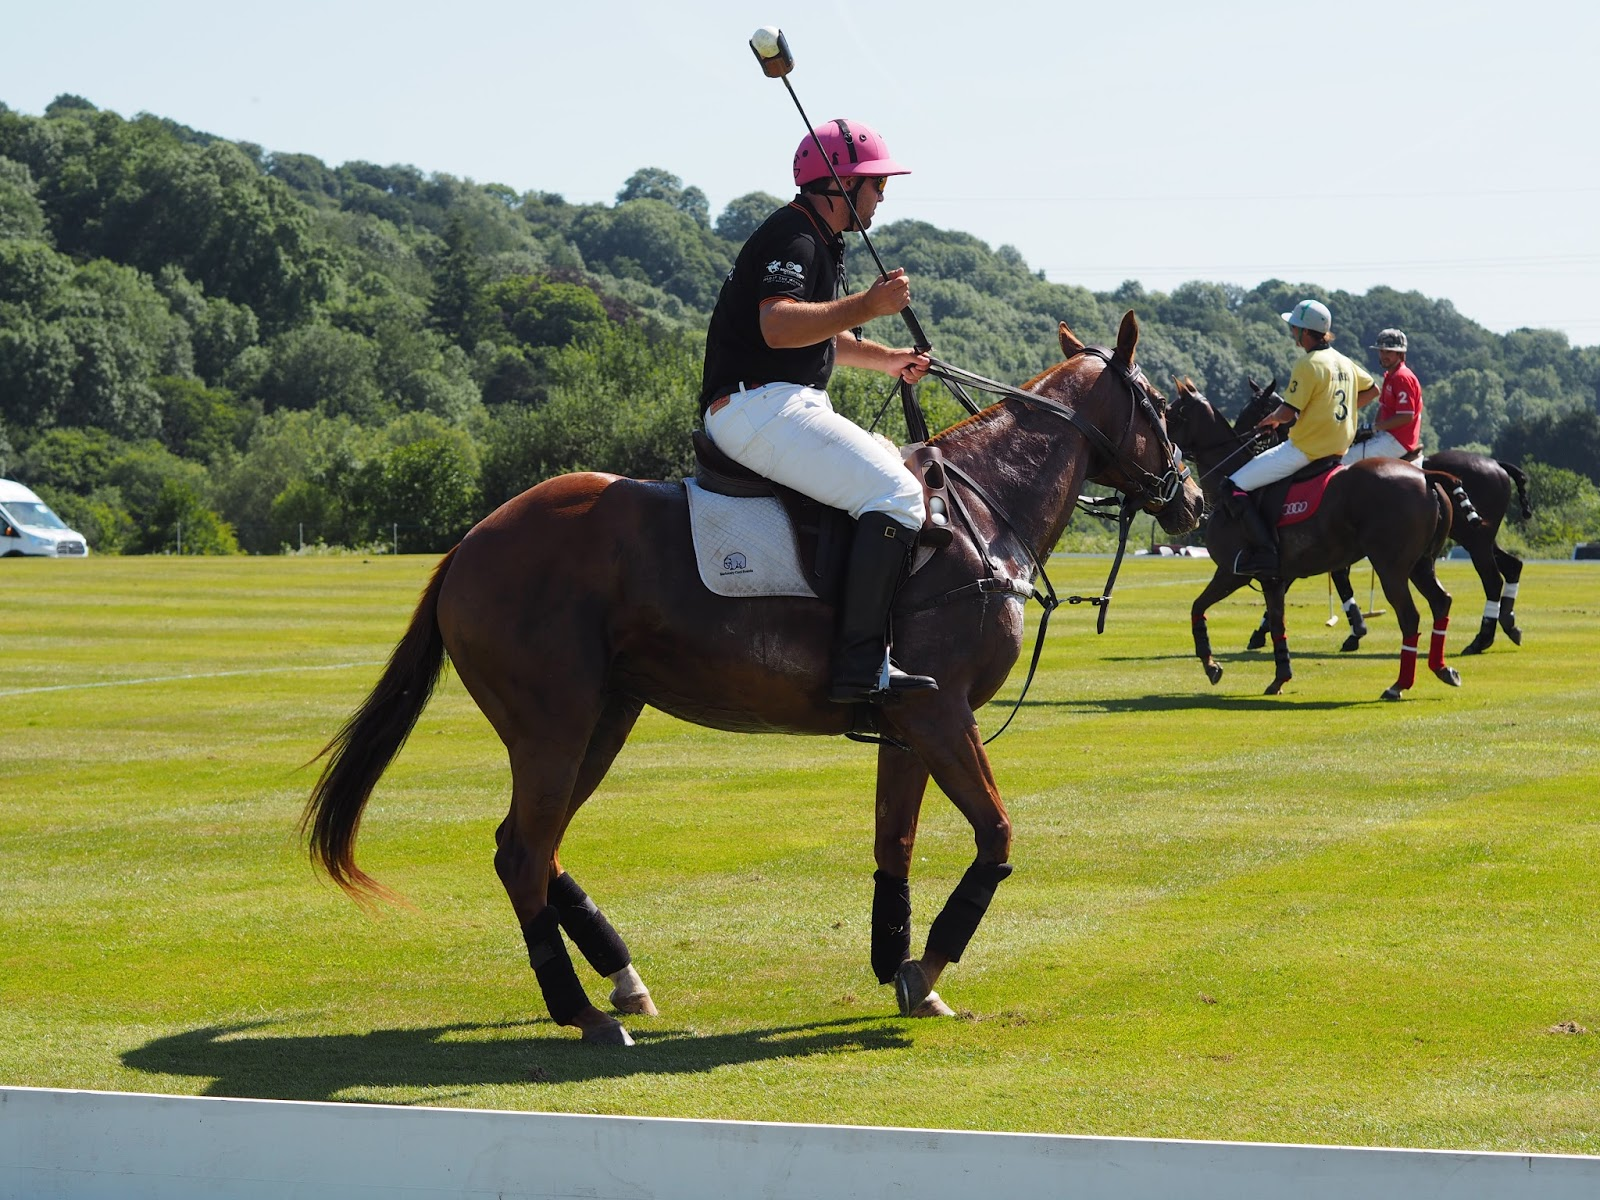 Postcards from the Polo: Polo at Celtic Manor